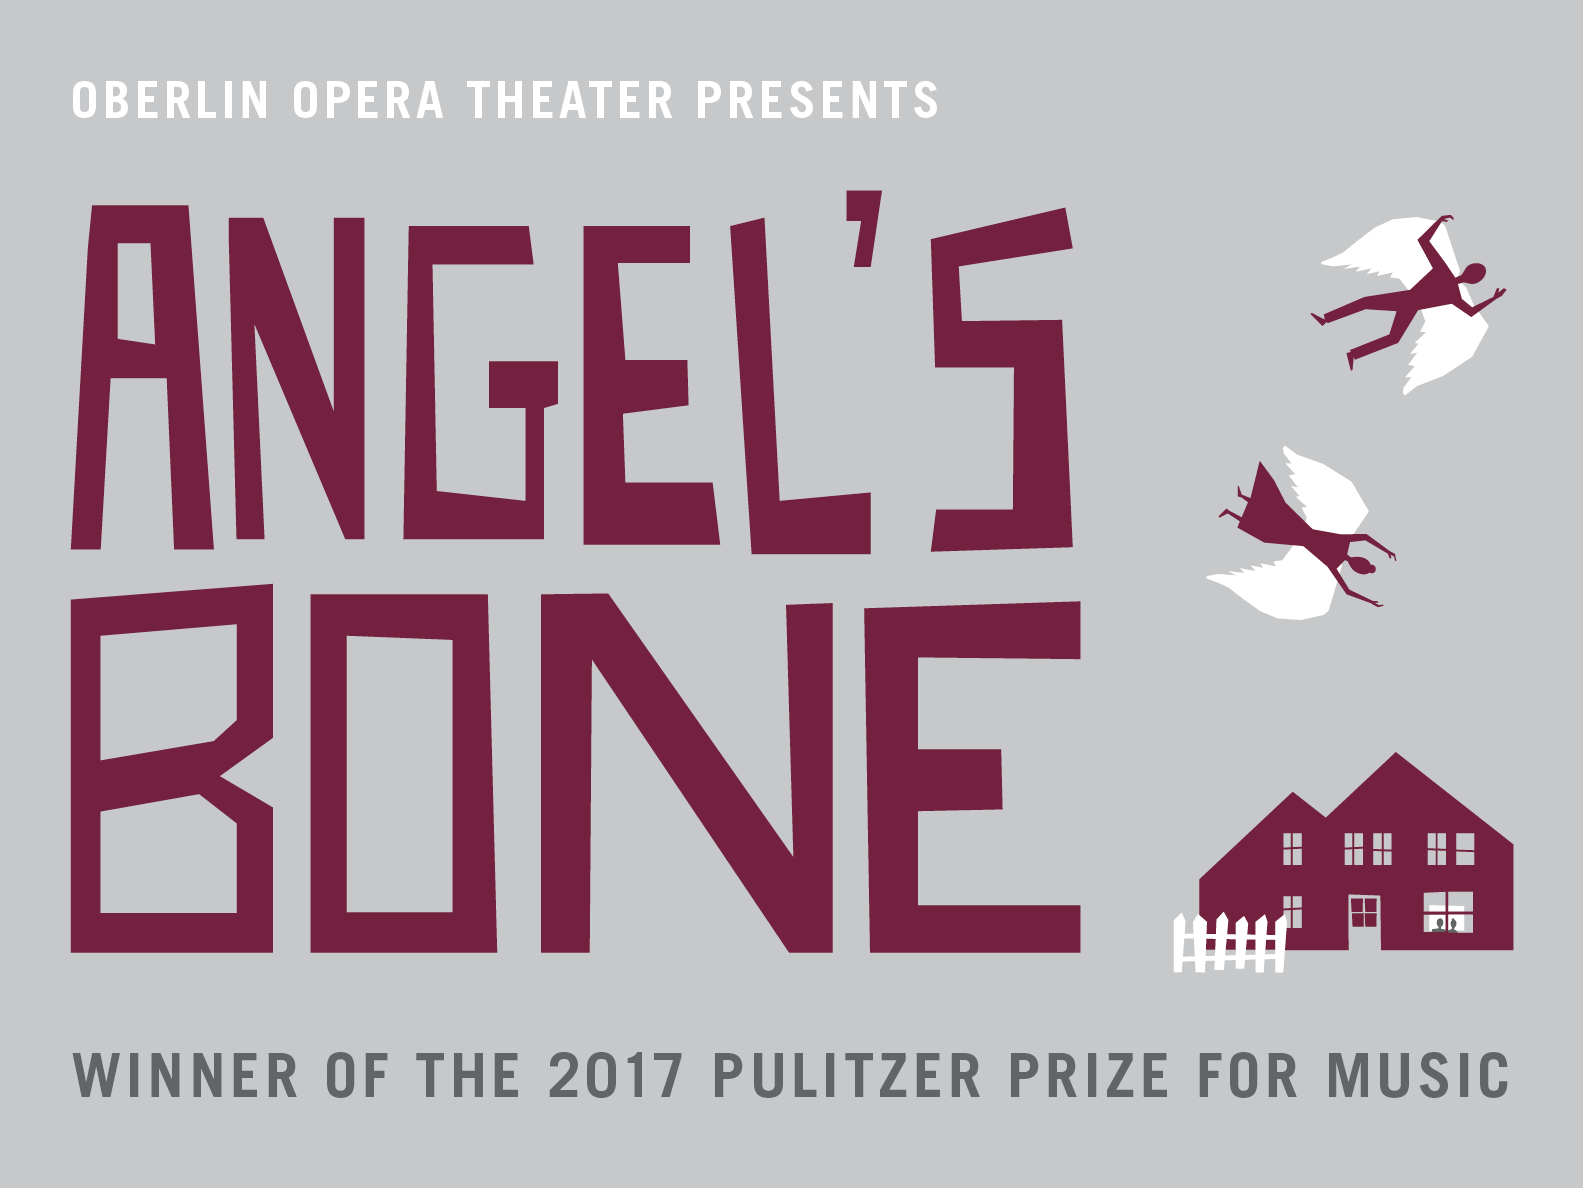 Oberlin Opera Theater Presents Angel's Bone, winner of the 2017 Pulitzer Prize for Music